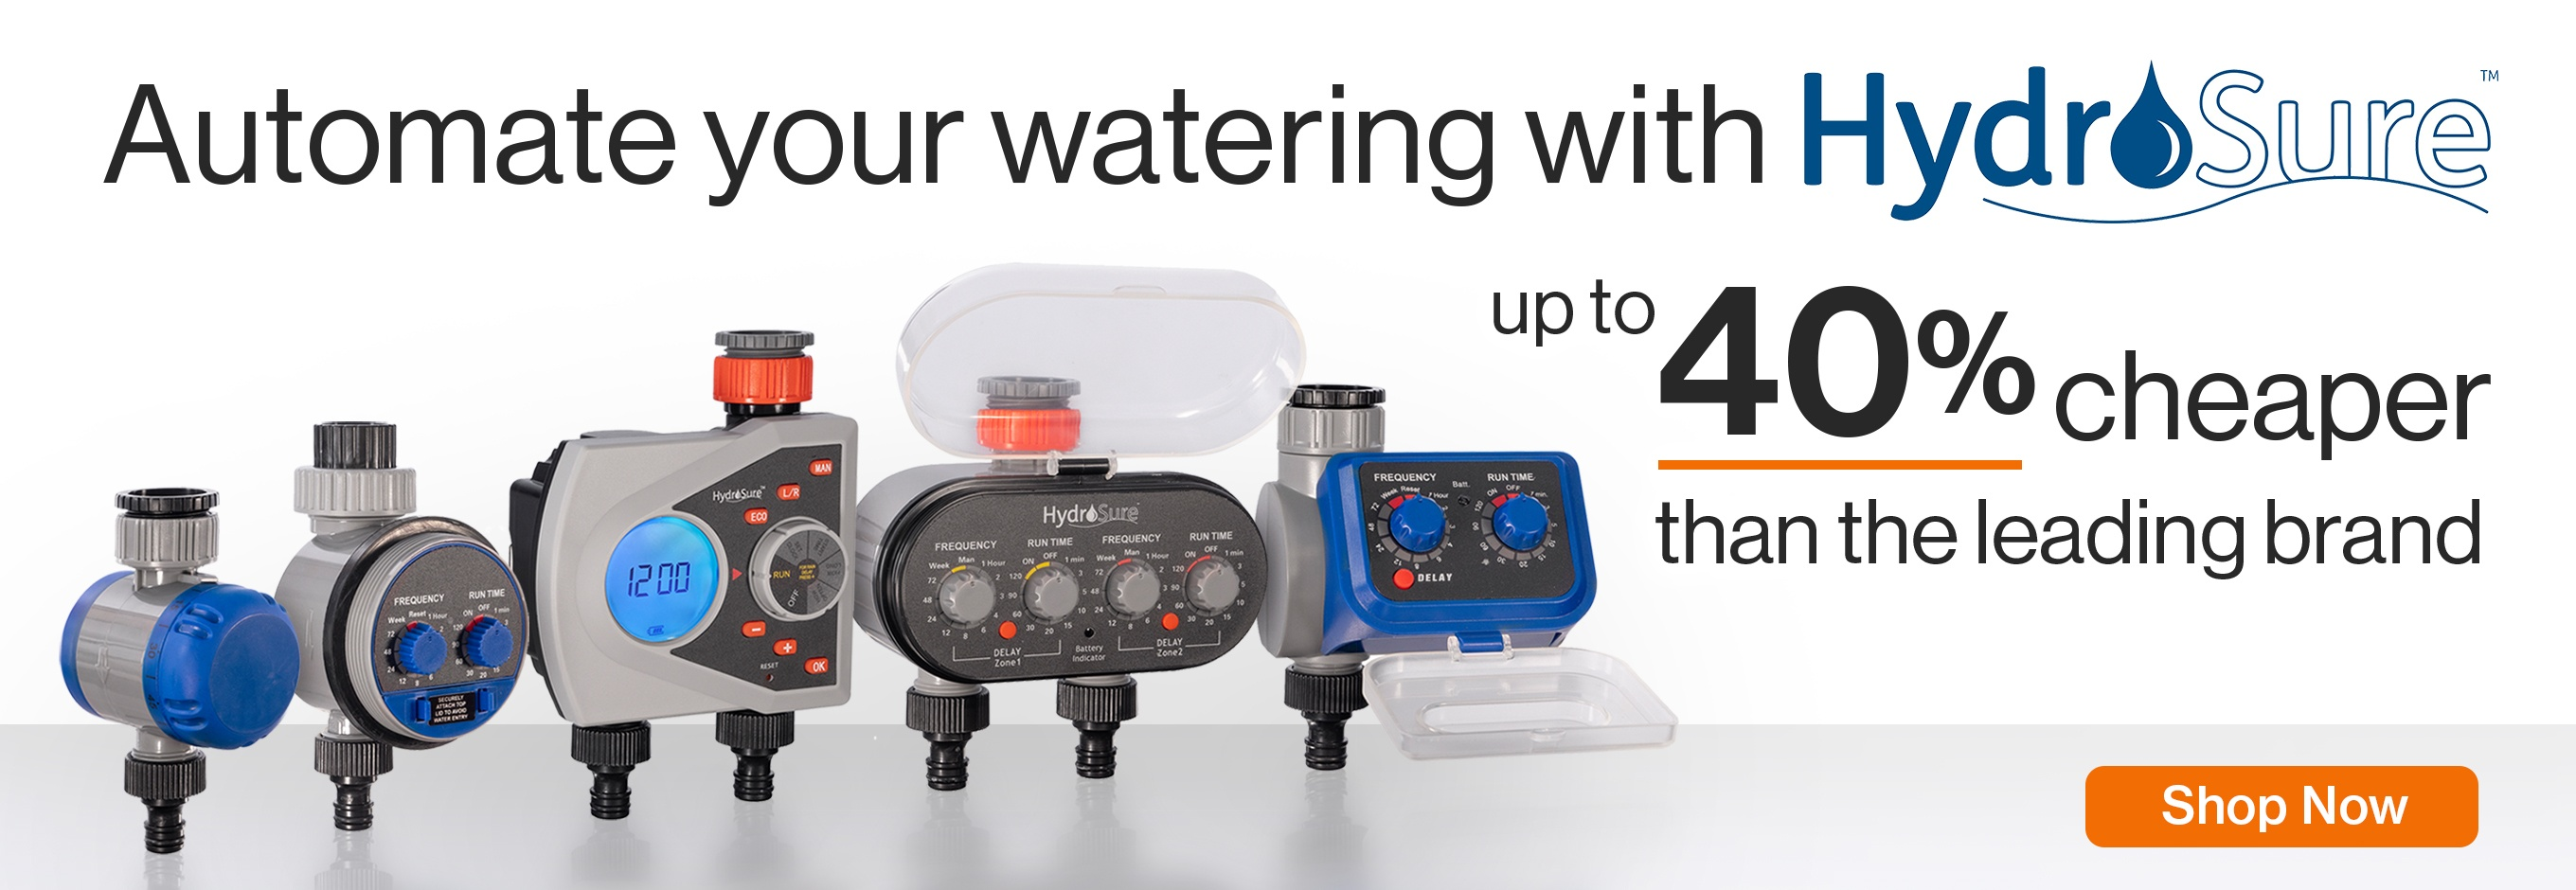 HydroSure Water Timers